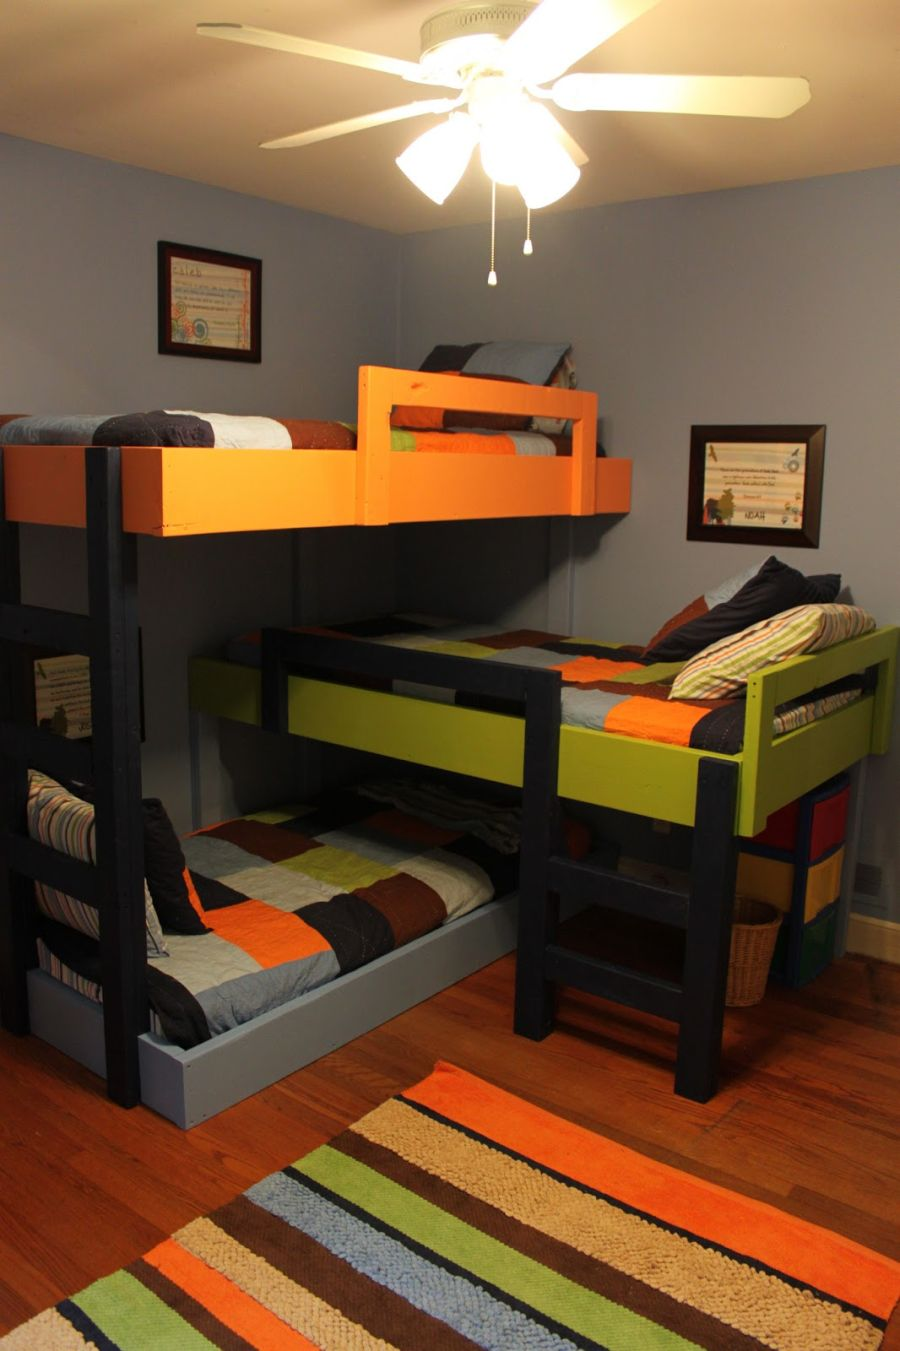 Space Saving Loft Bed Saving Space And Staying Stylish With Triple Bunk Beds